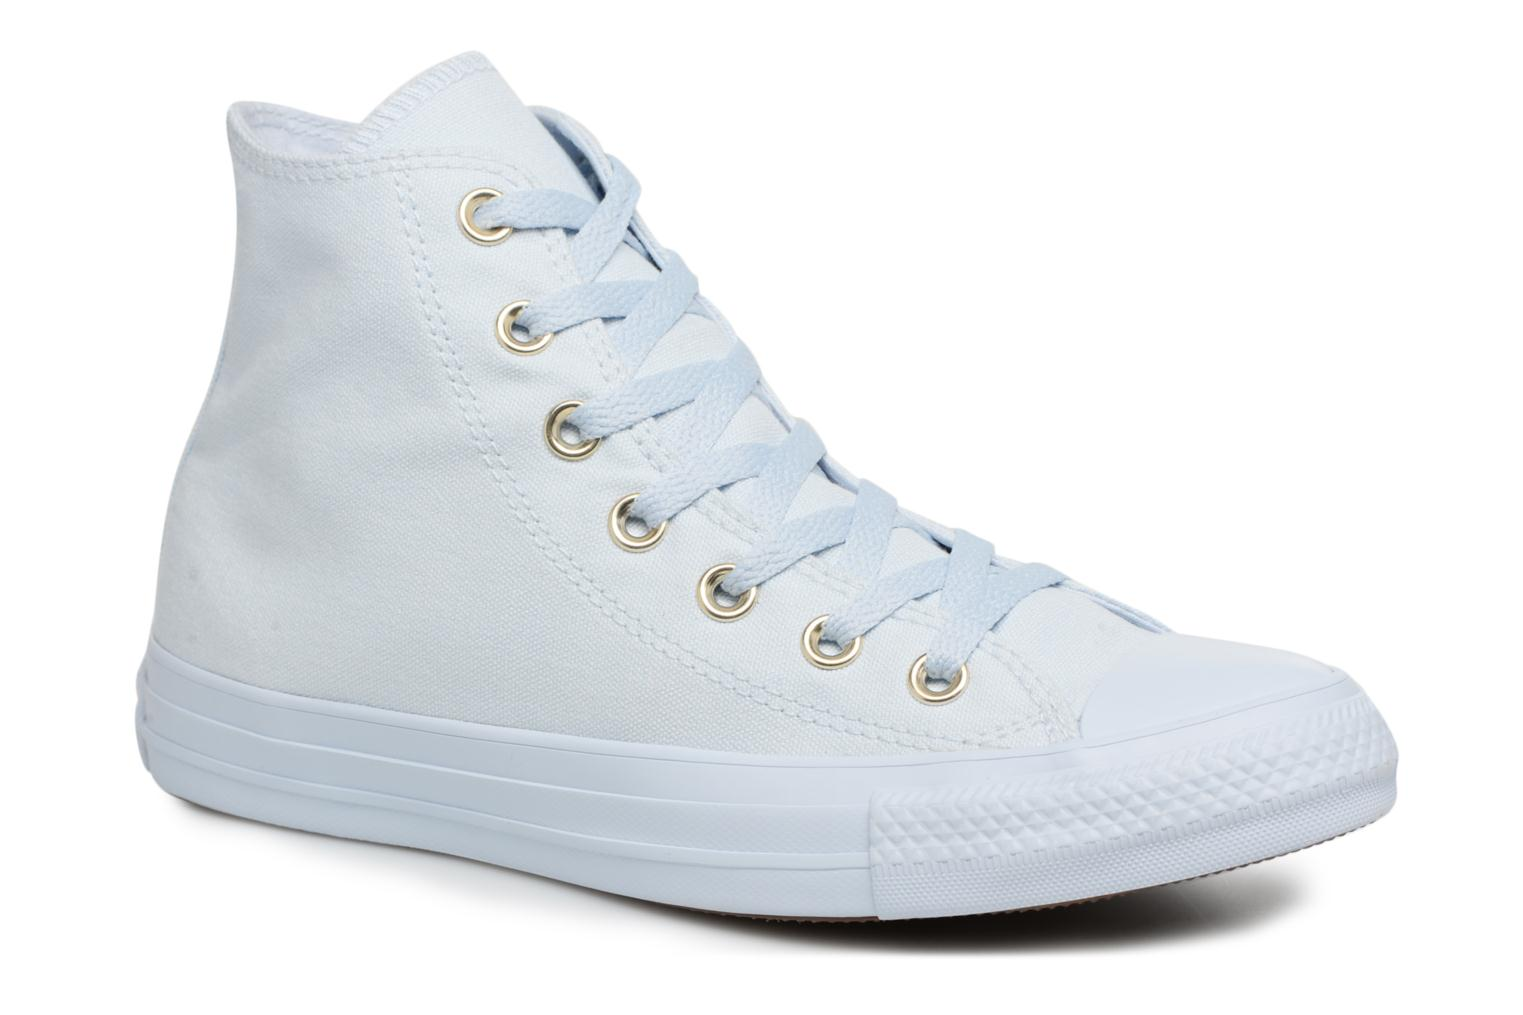 Marques Chaussure femme Converse femme Chuck Taylor All Star Mono Glam Canvas Color Hi W Egret/Egret/Gold